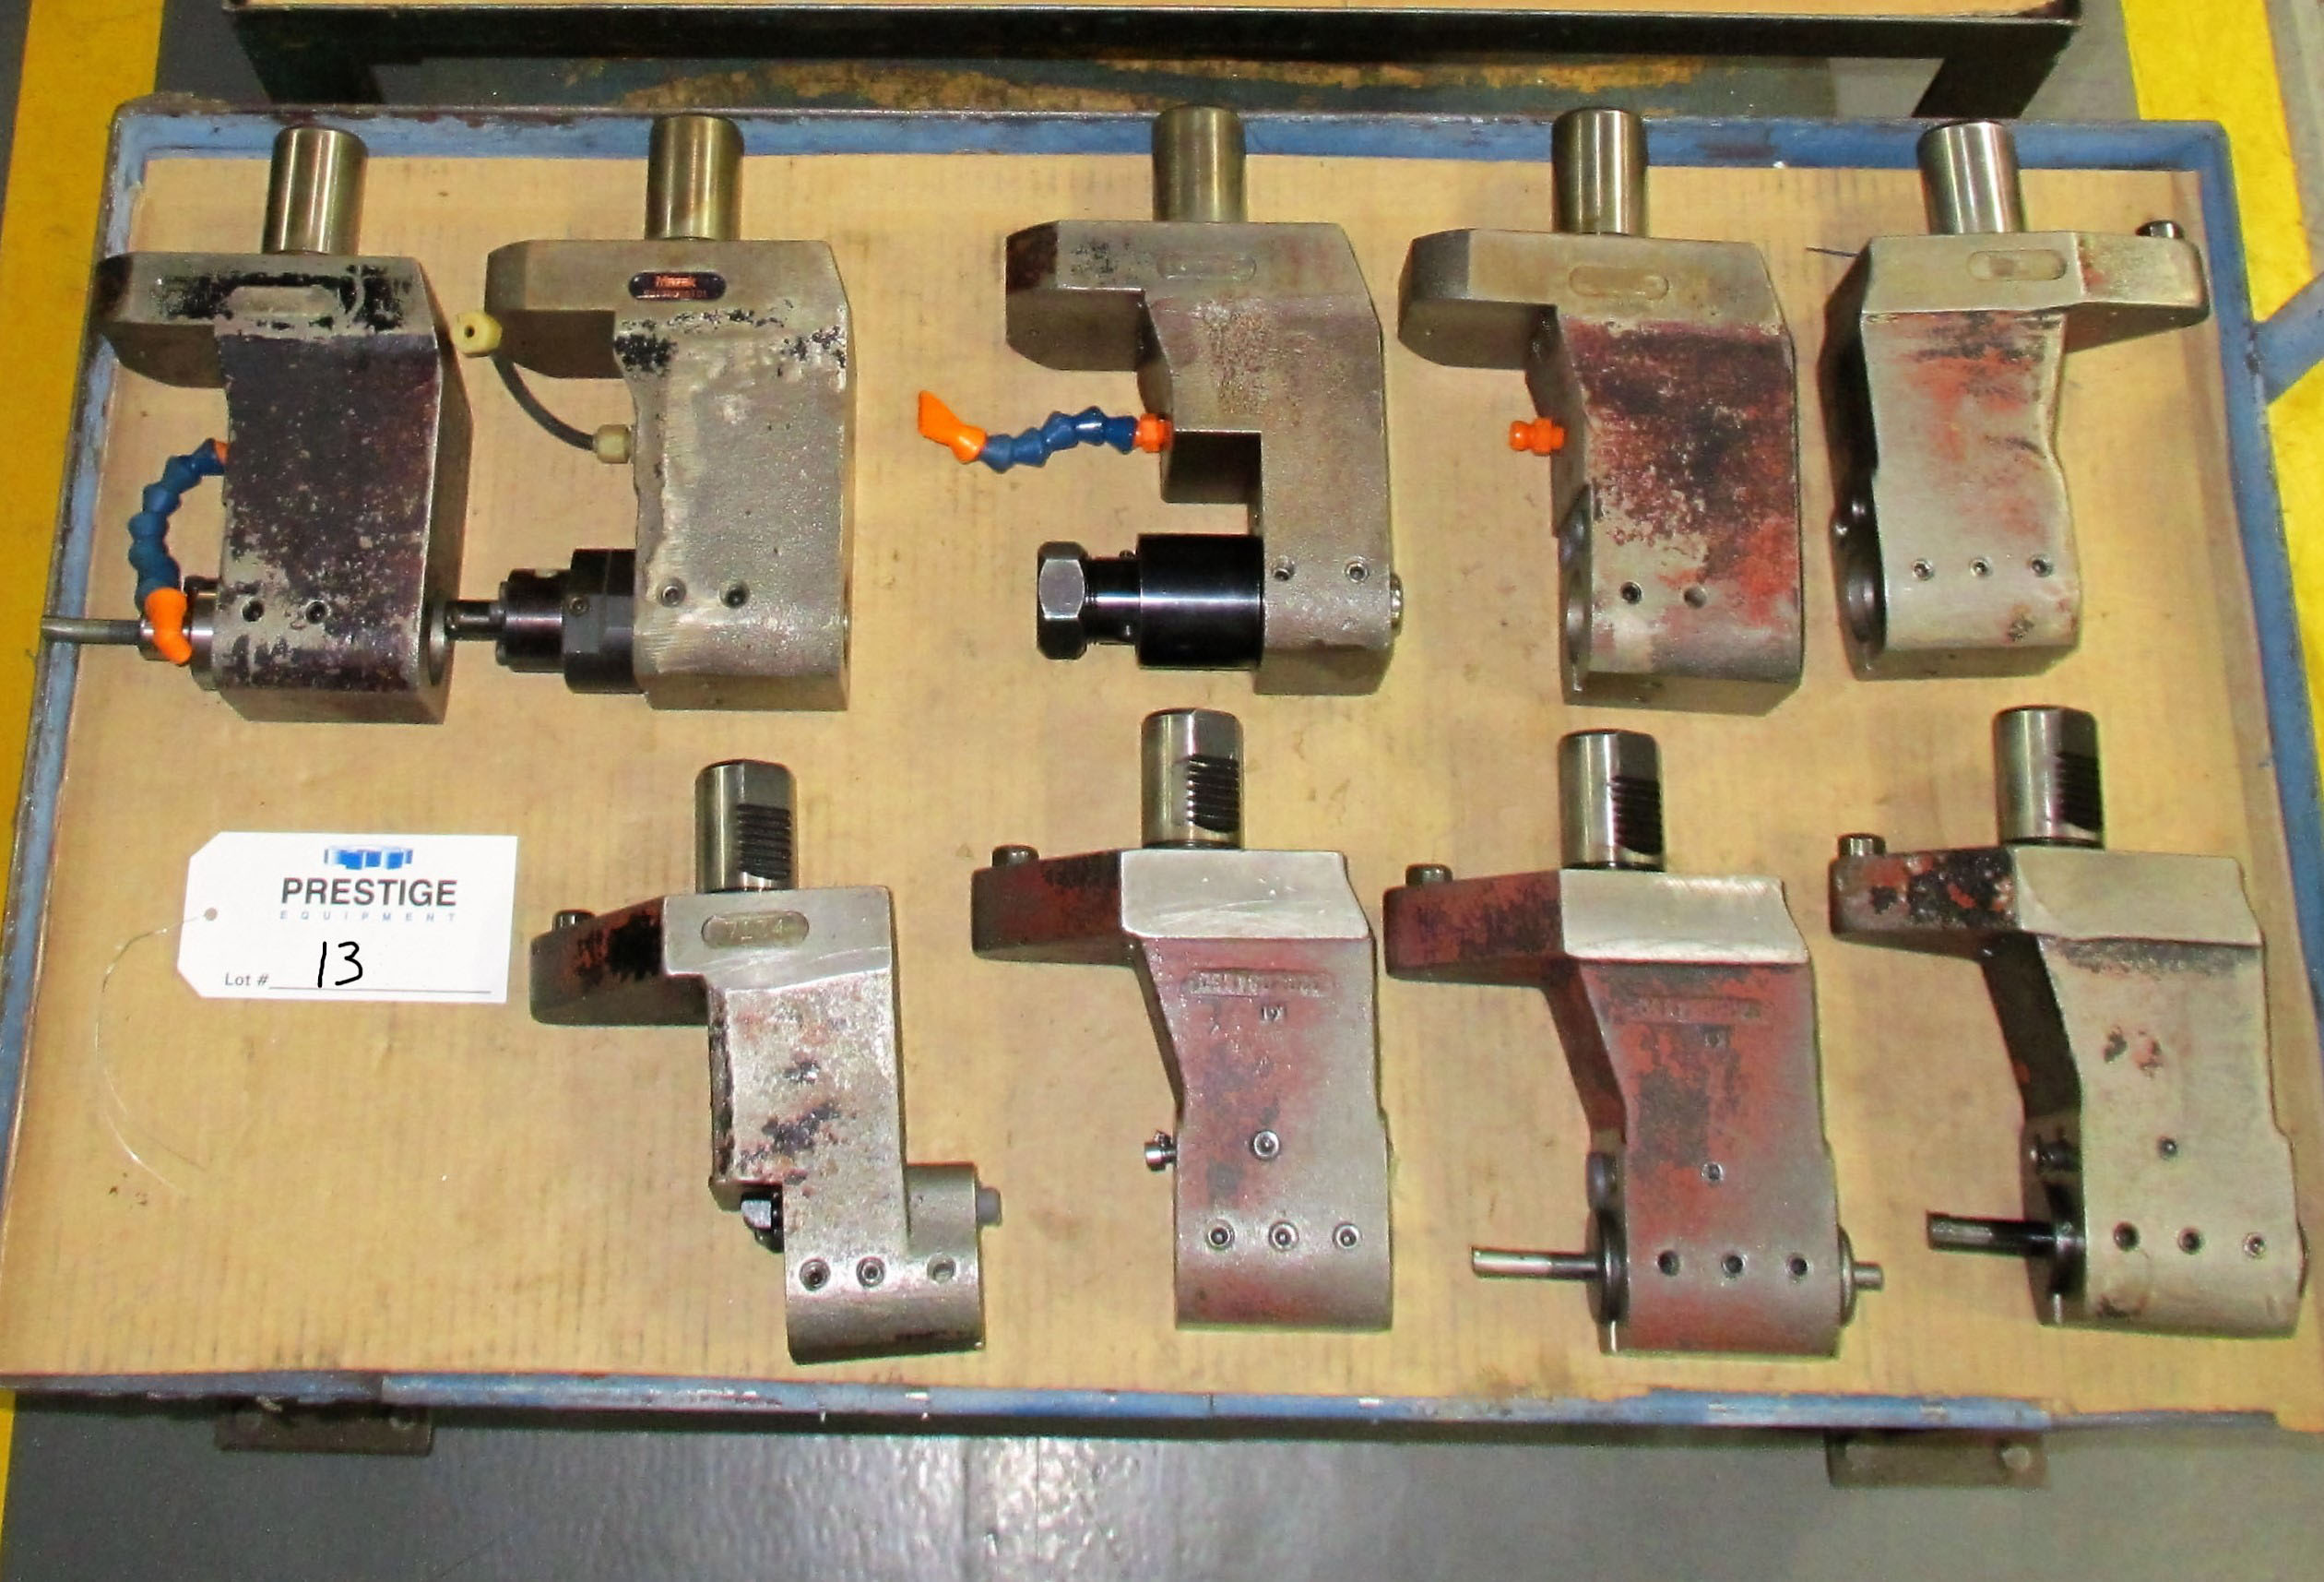 (9) I.D. Fixed/Stationary Tool Holders For Mazak QTN-250II-MSY CNC Turning Center